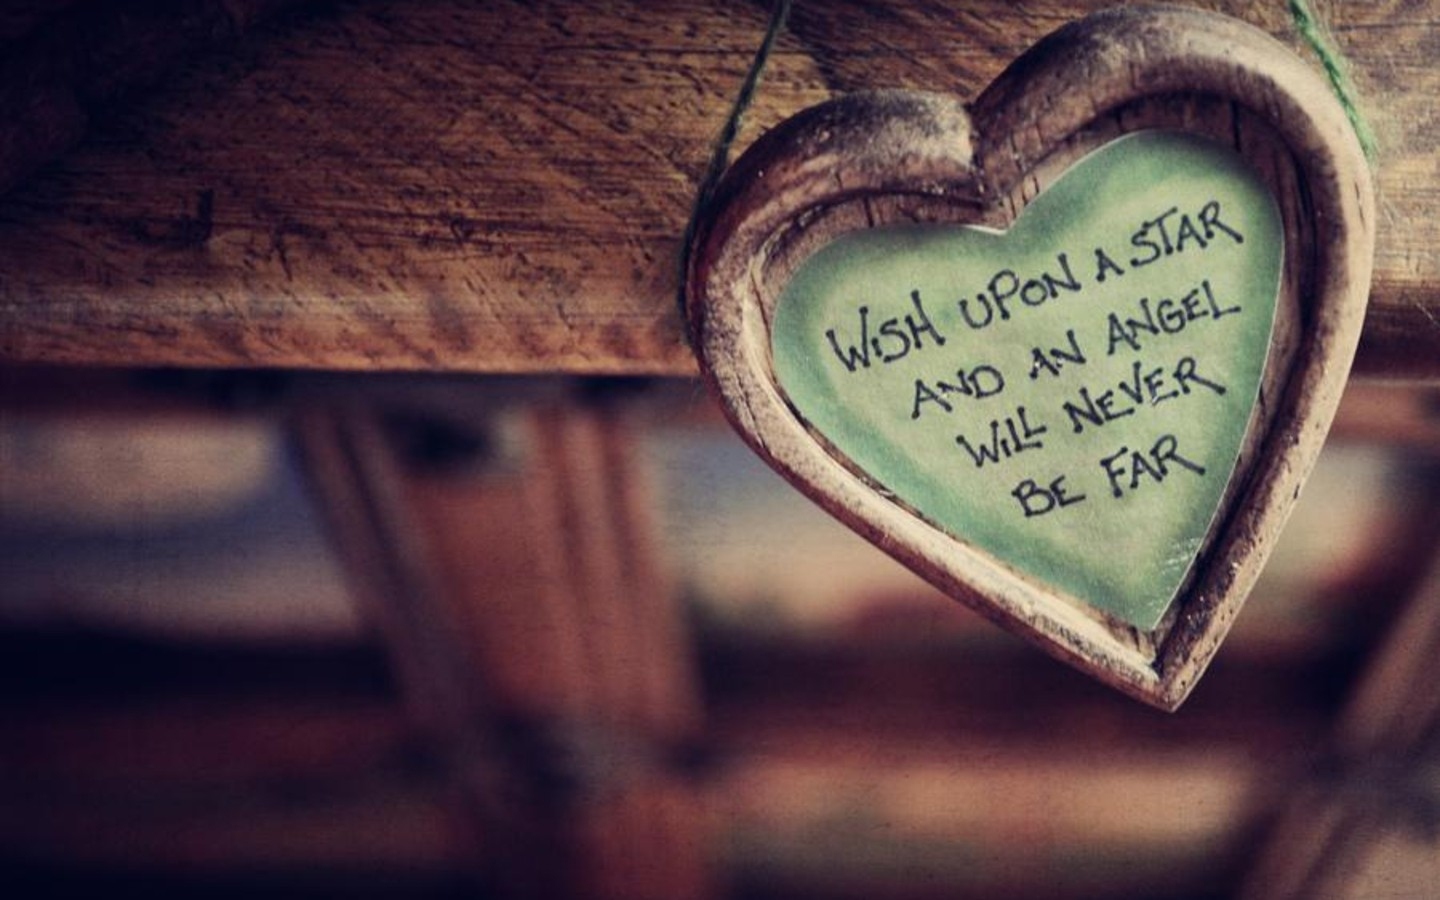 Wish You Happy Love Quotes For Facebook Timeline Cover